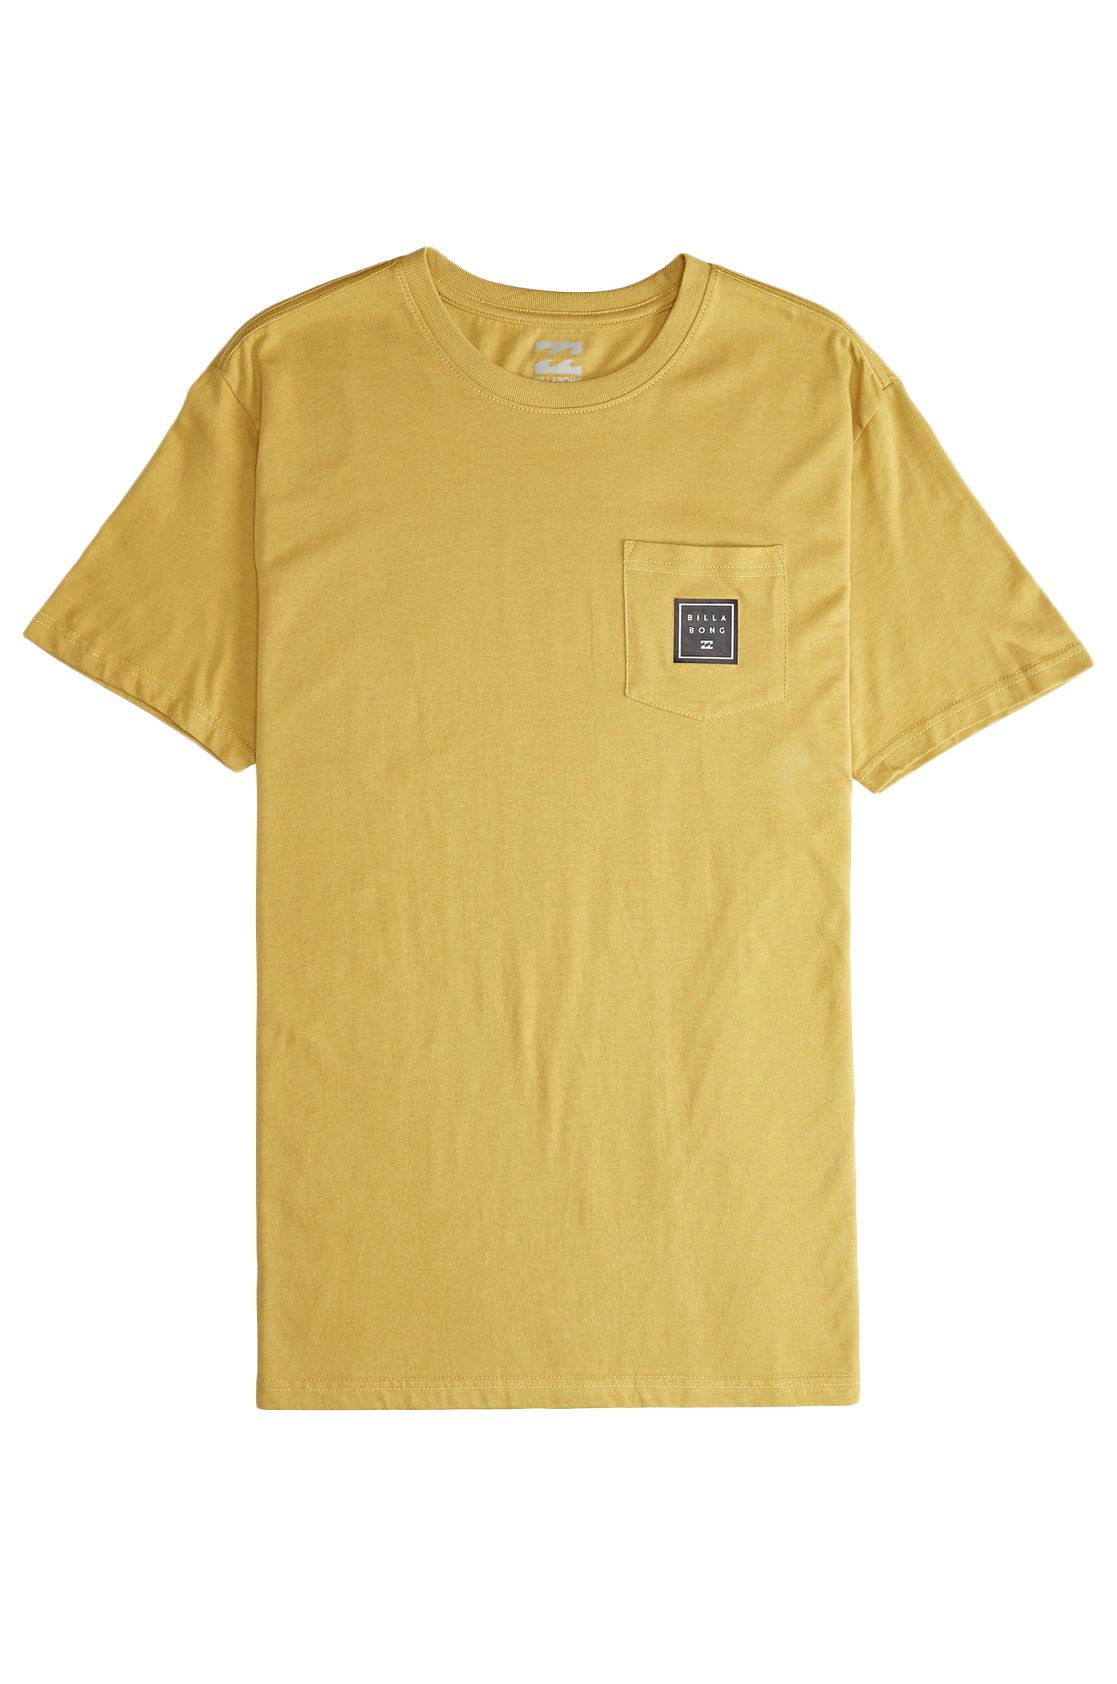 T-Shirt Billabong STACKED Mustard